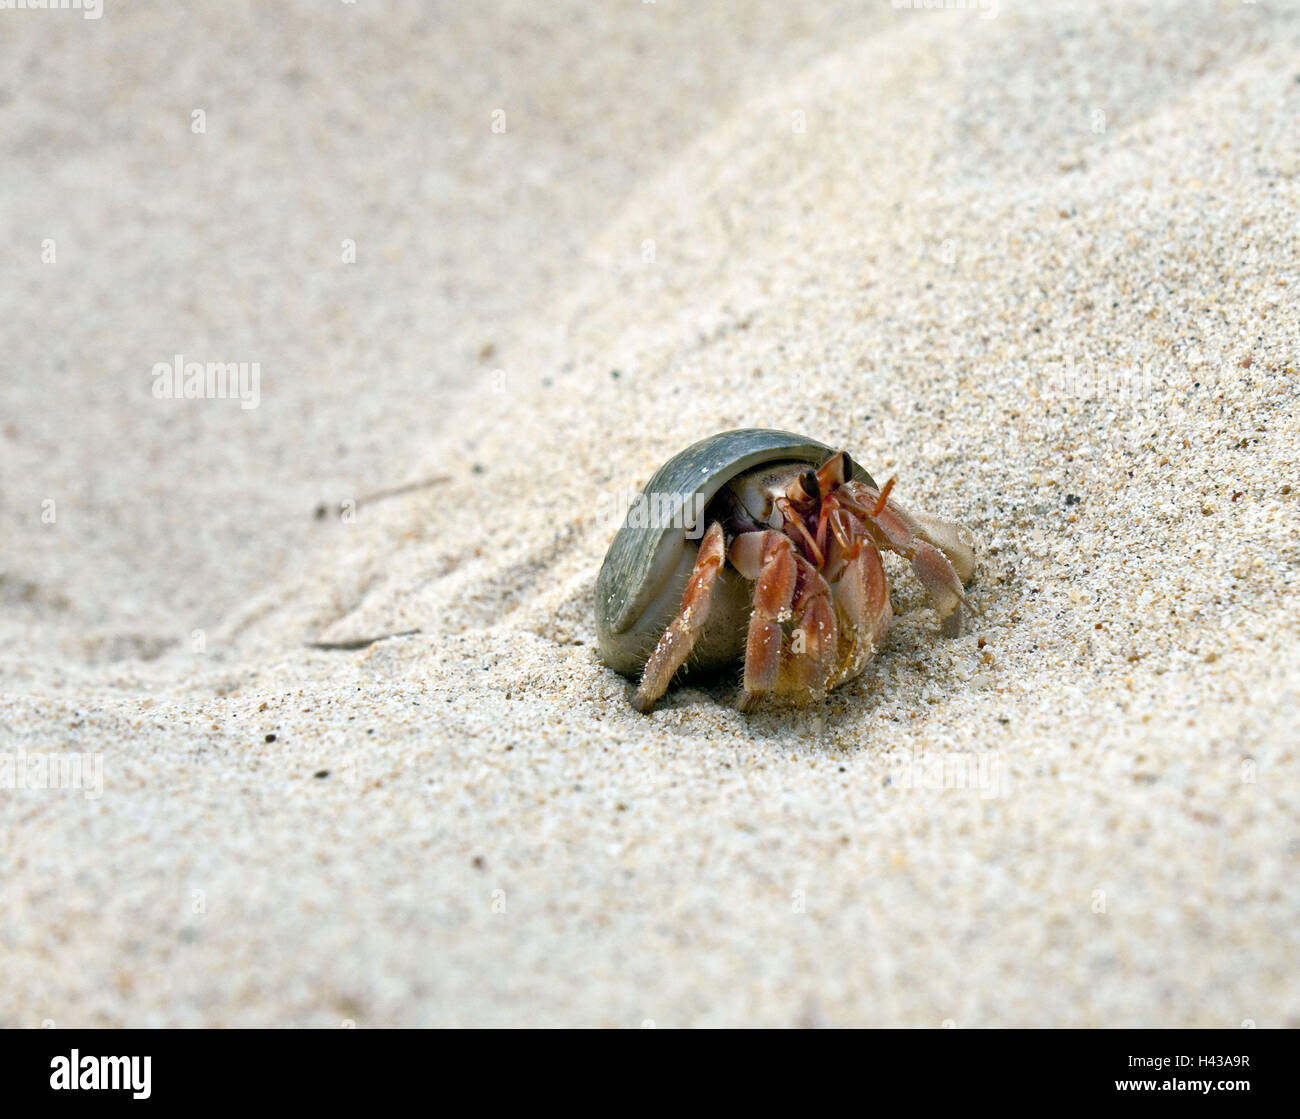 Beach, hermit crab, Asia, Thailand, outside, fauna, cancer, crustaceans, South-East Asia, animal, shellfish, beach, - Stock Image